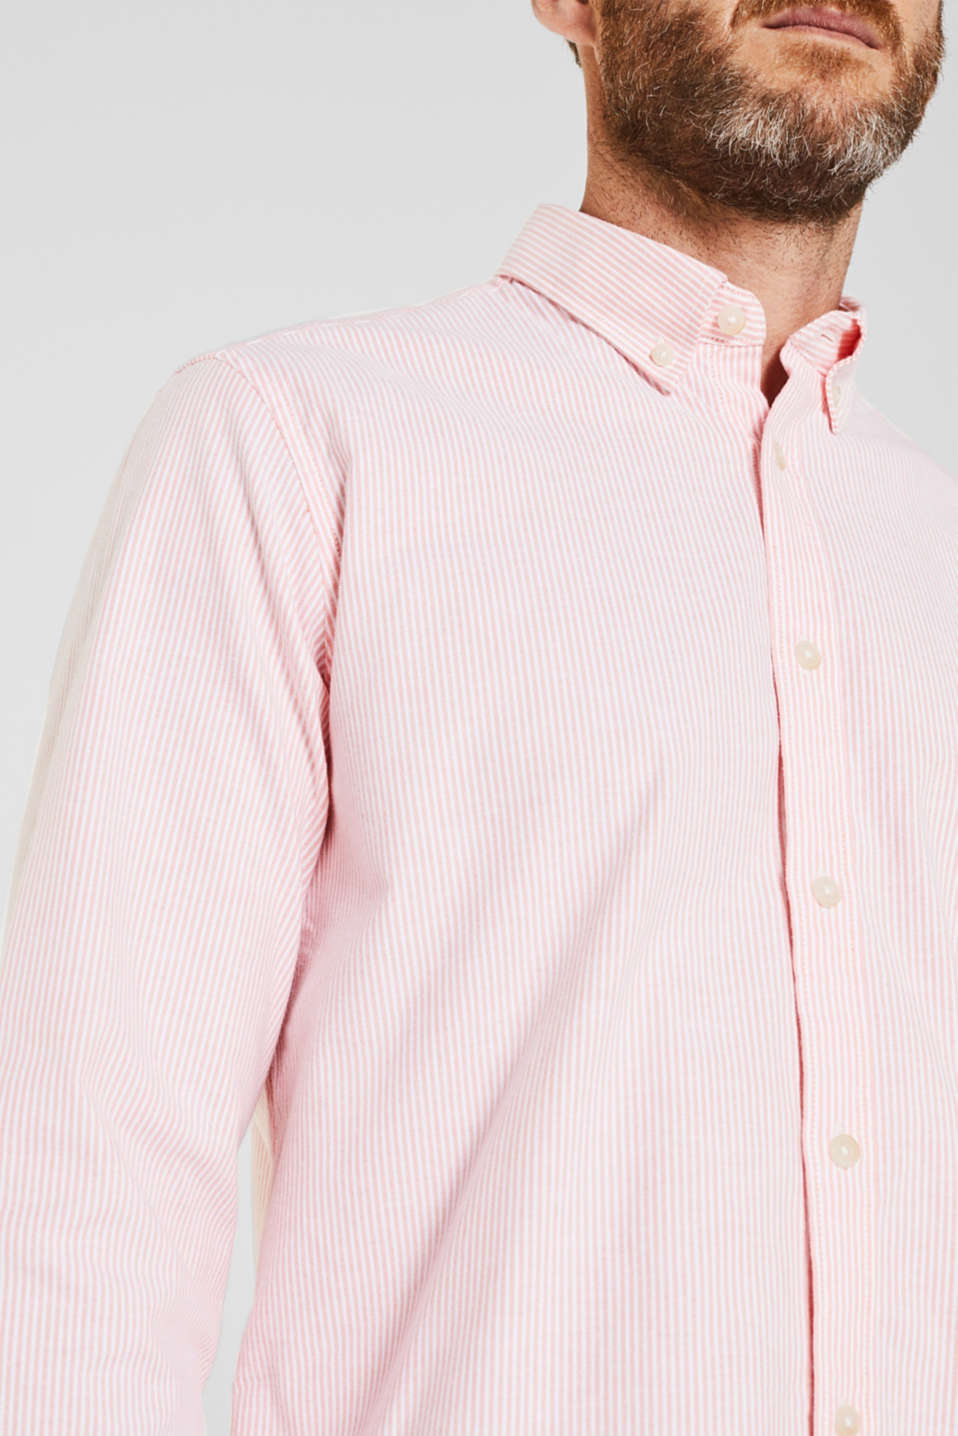 Oxford shirt in stretch cotton, CORAL 3, detail image number 2